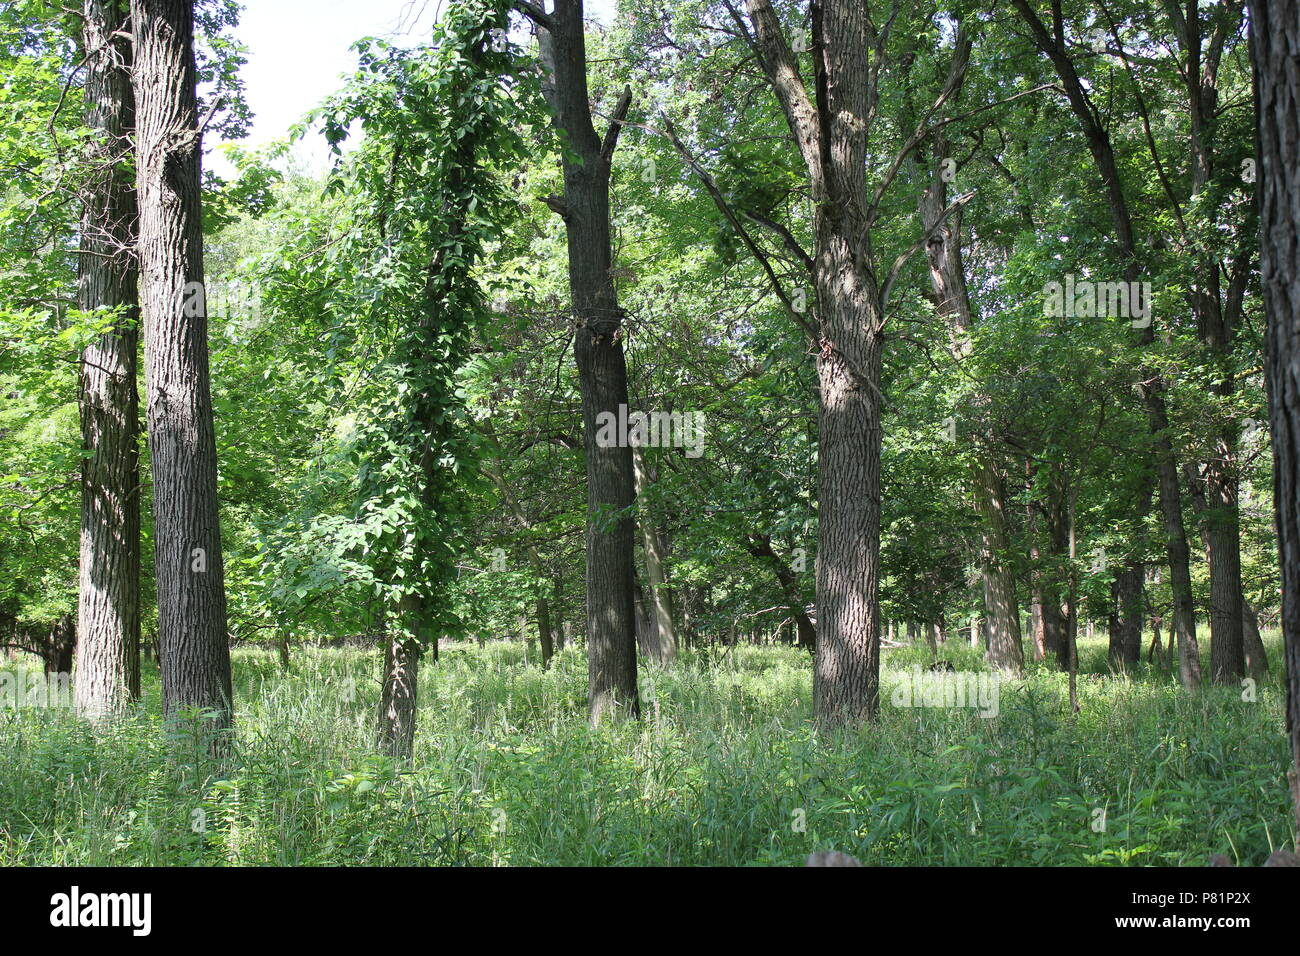 Savannah area at the North Park Village Nature Center in Chicago, Illinois. - Stock Image